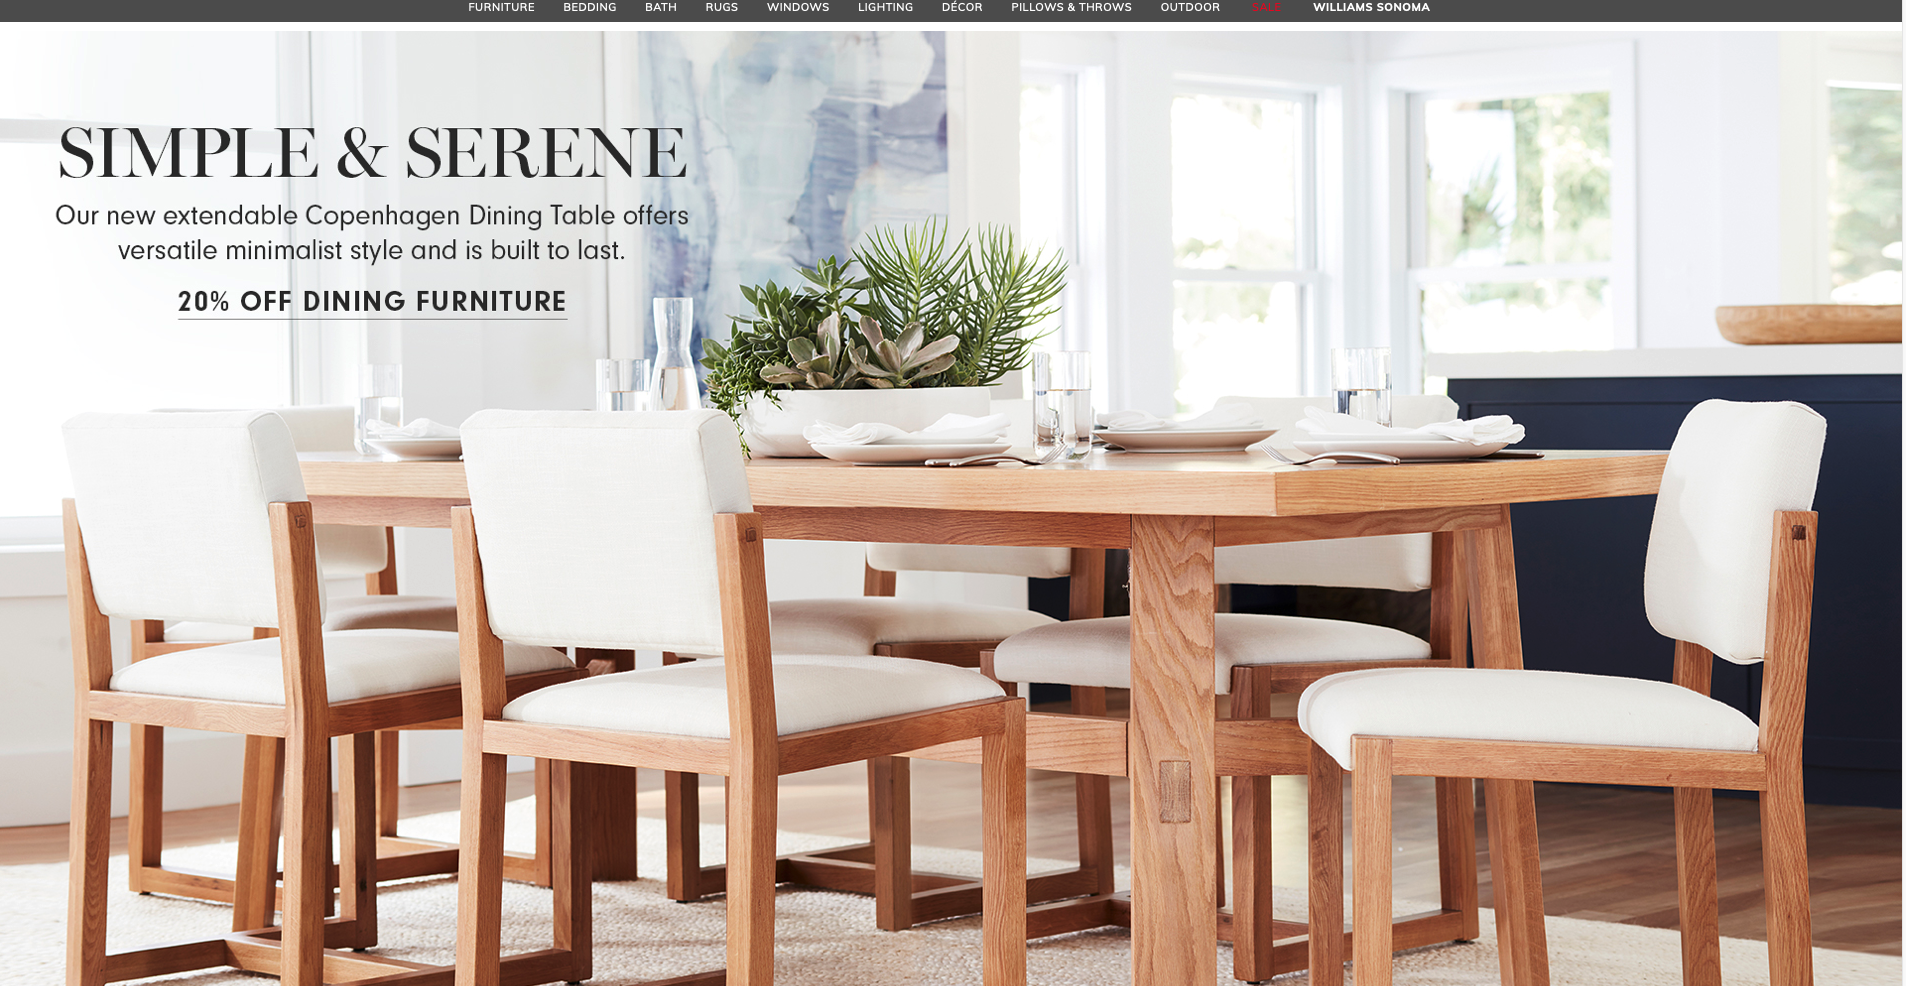 Screen Shot 2020-02-24 at 3.48.08 PM